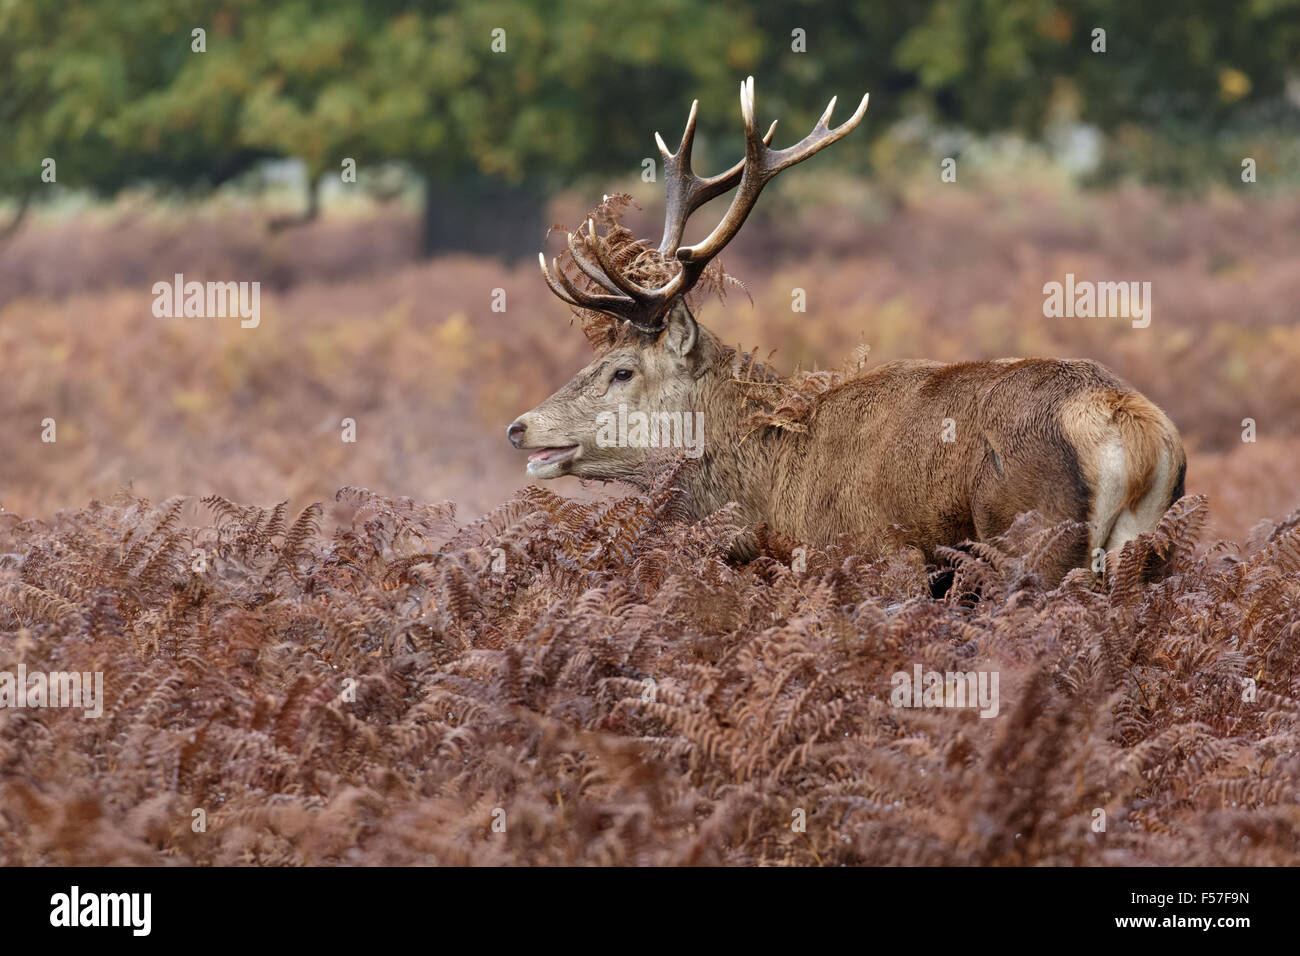 Red Deer rut stag (Cervus elaphus) among the bracken in autumn. - Stock Image